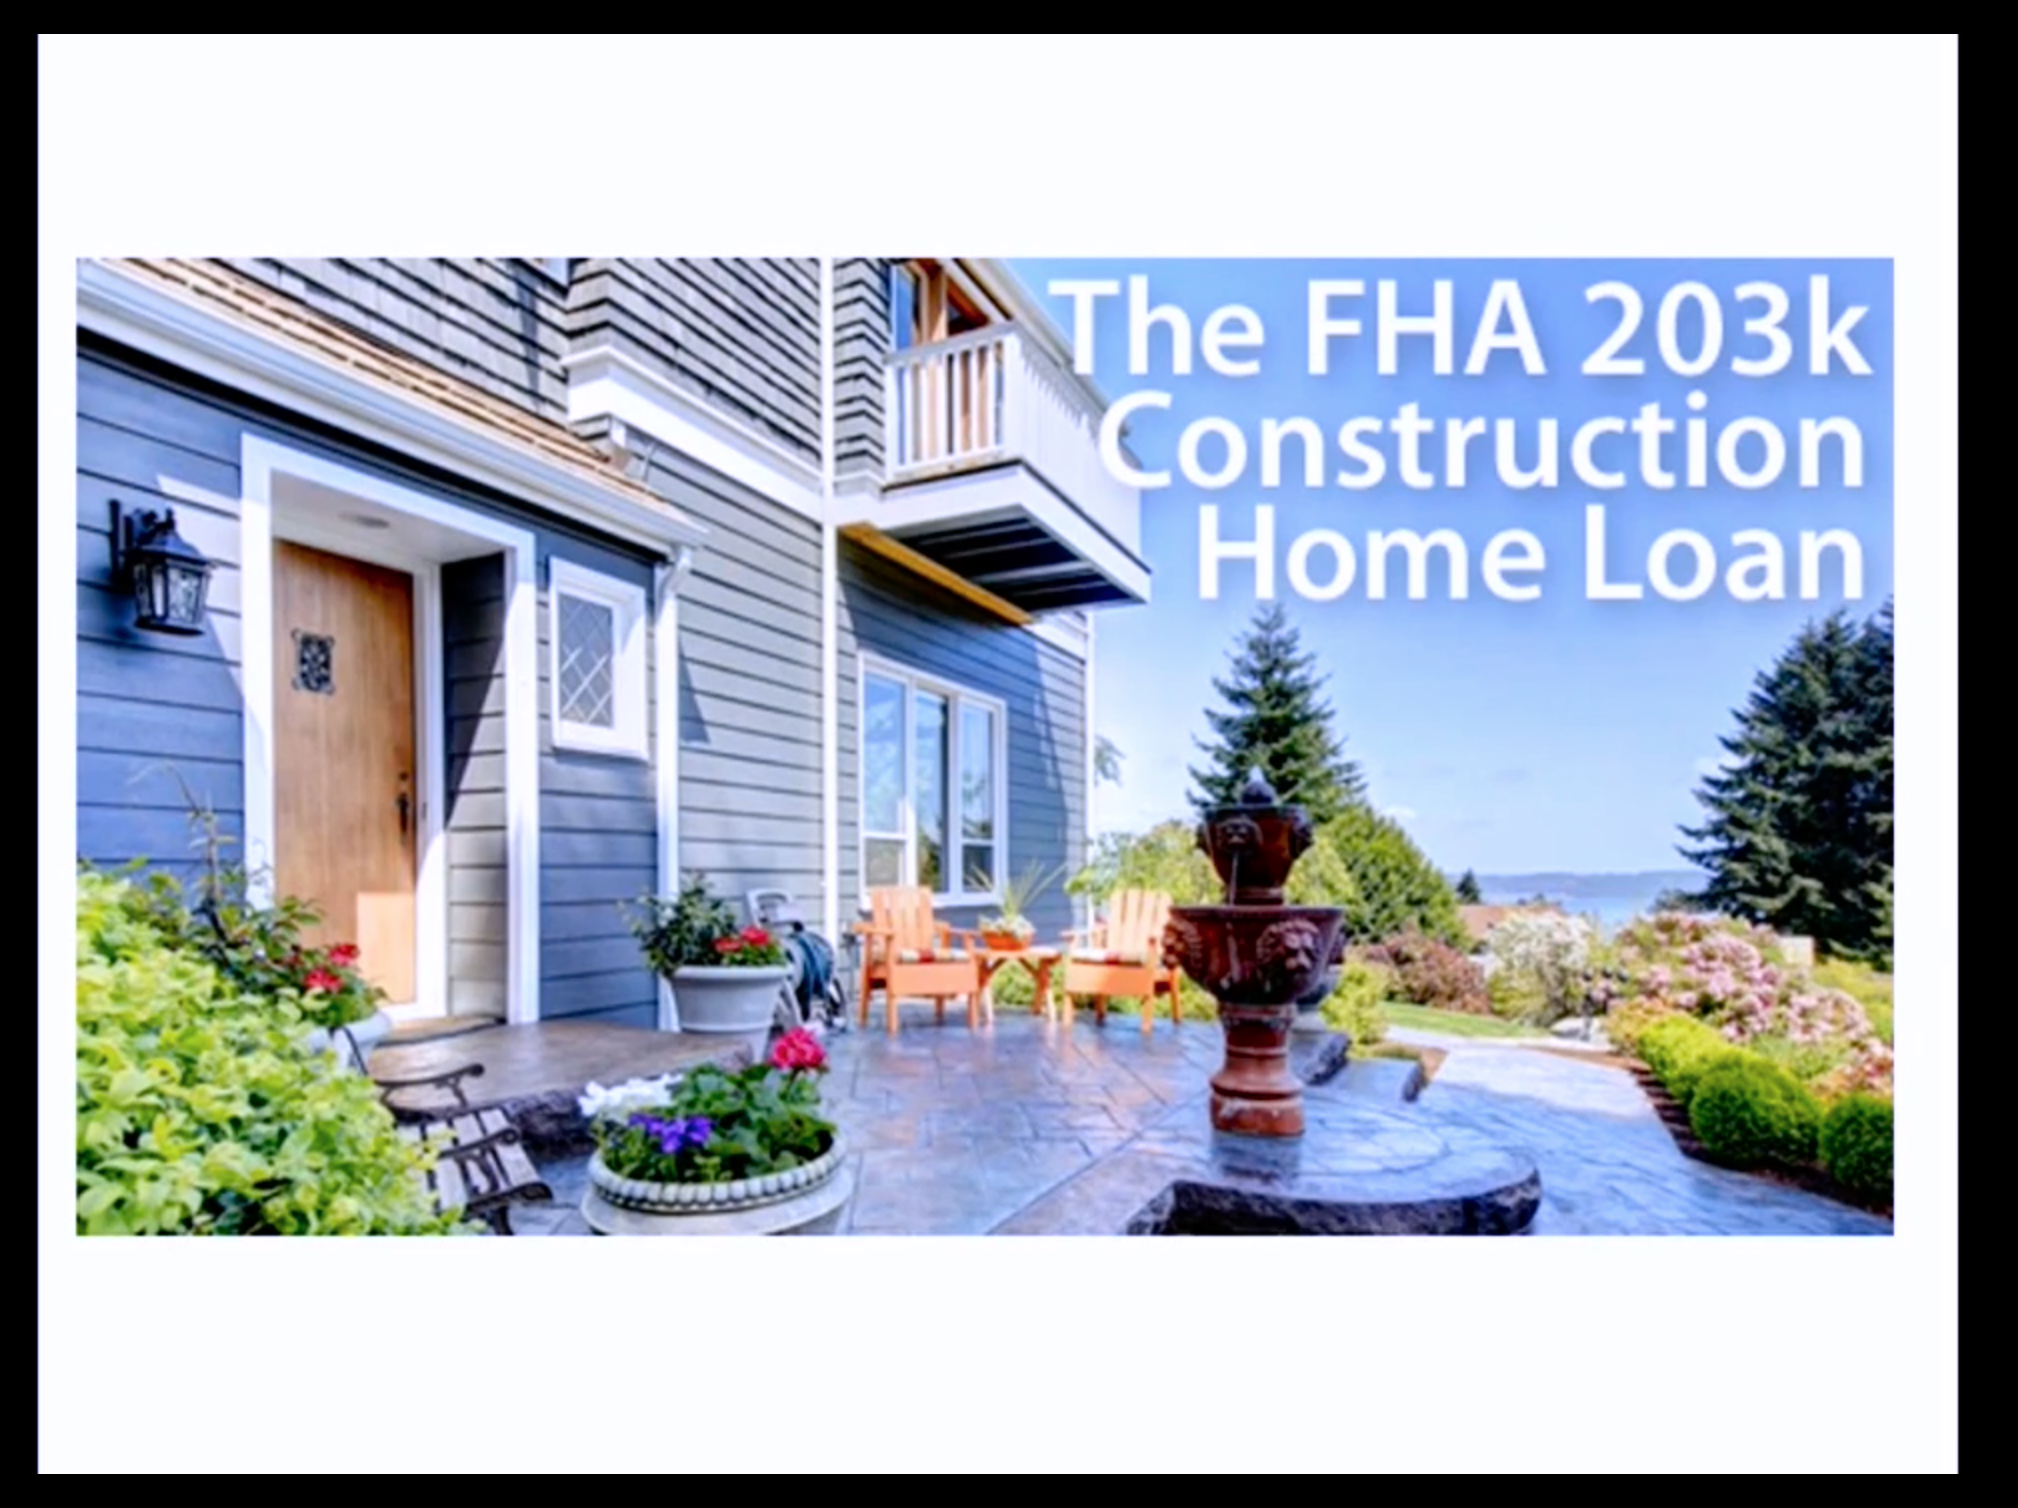 Artwork for May-19-2017-What is The FHA 203k Construction Home Loan